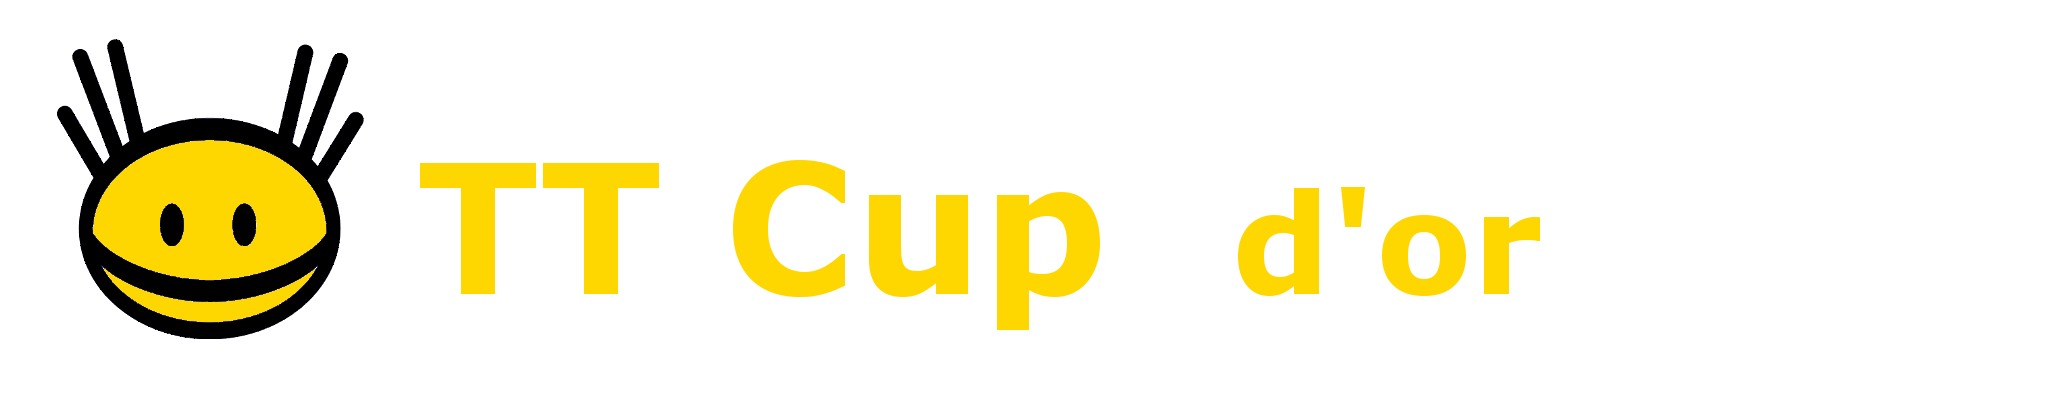 TricTrac Cup d'or